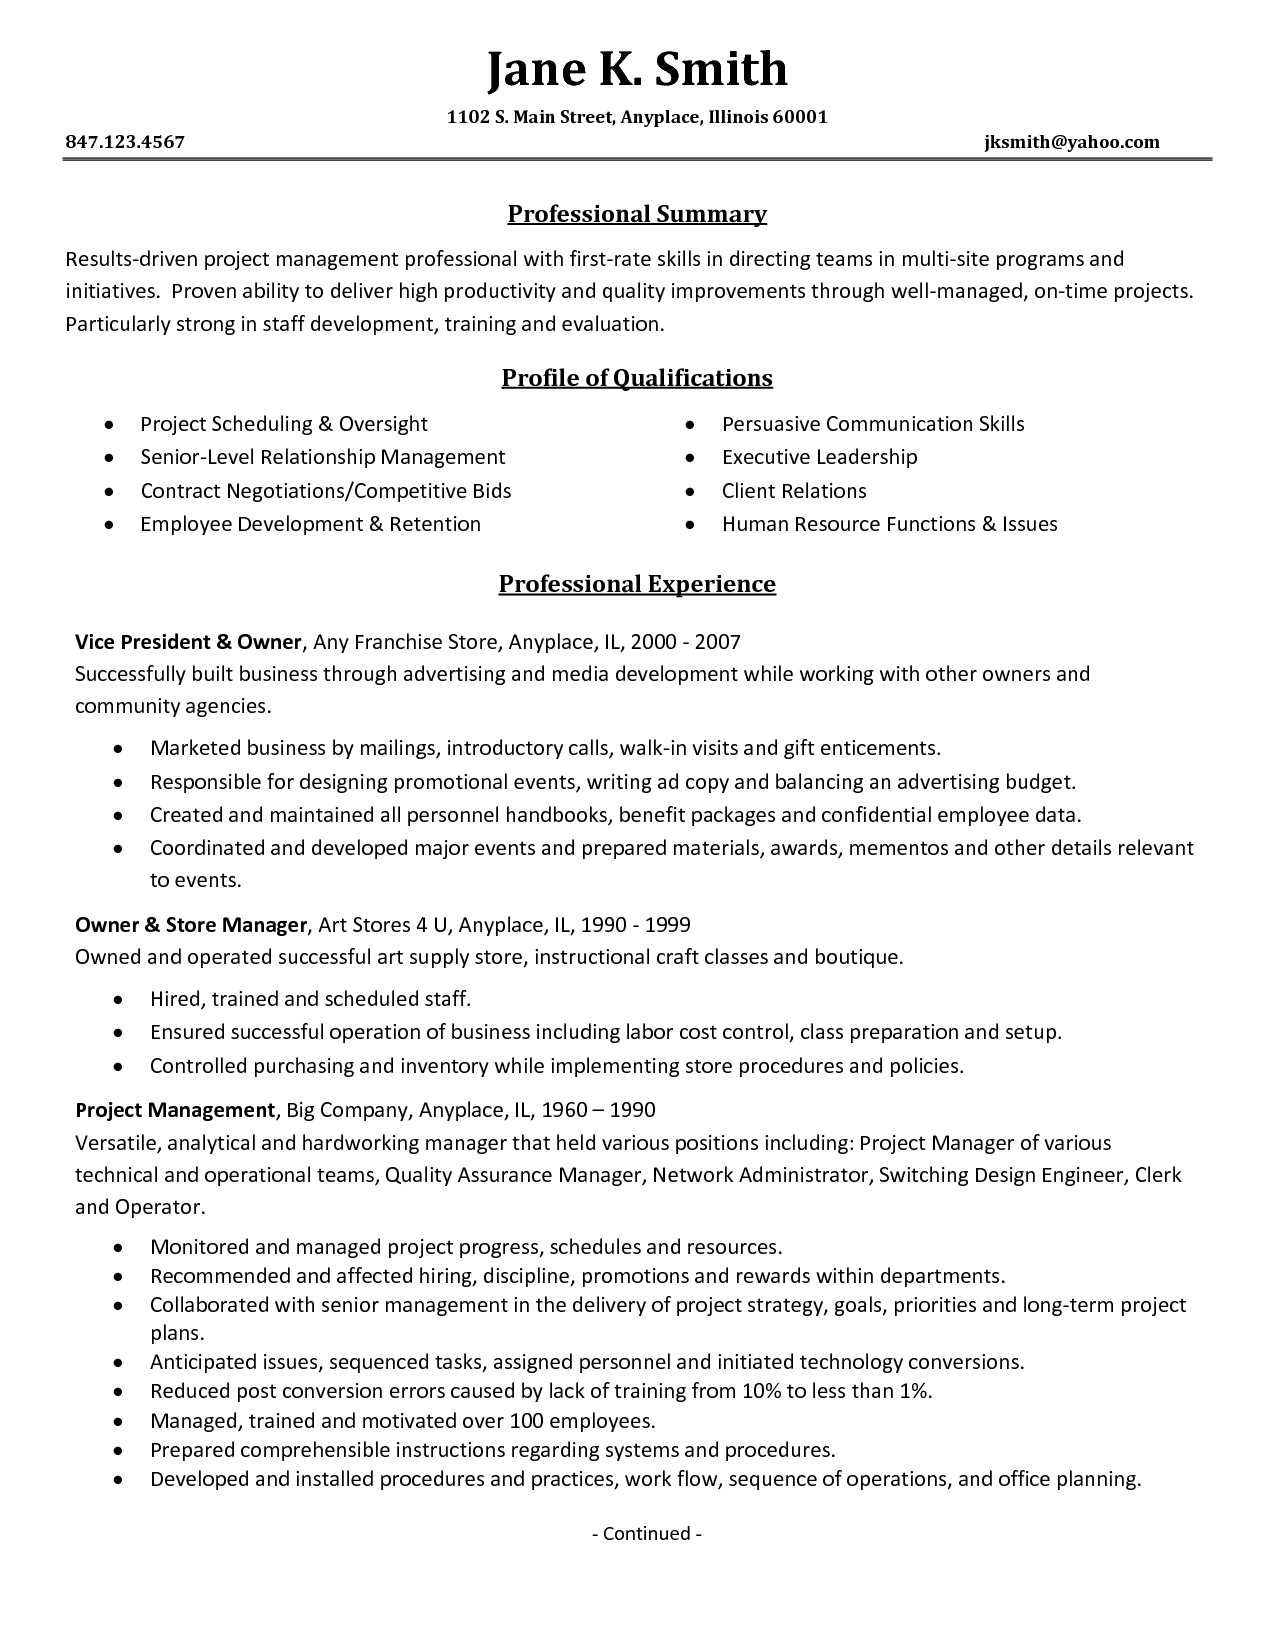 Skill Resume Template Classy Leadership Skills Resume Leadership Skills Resume Template…  Job